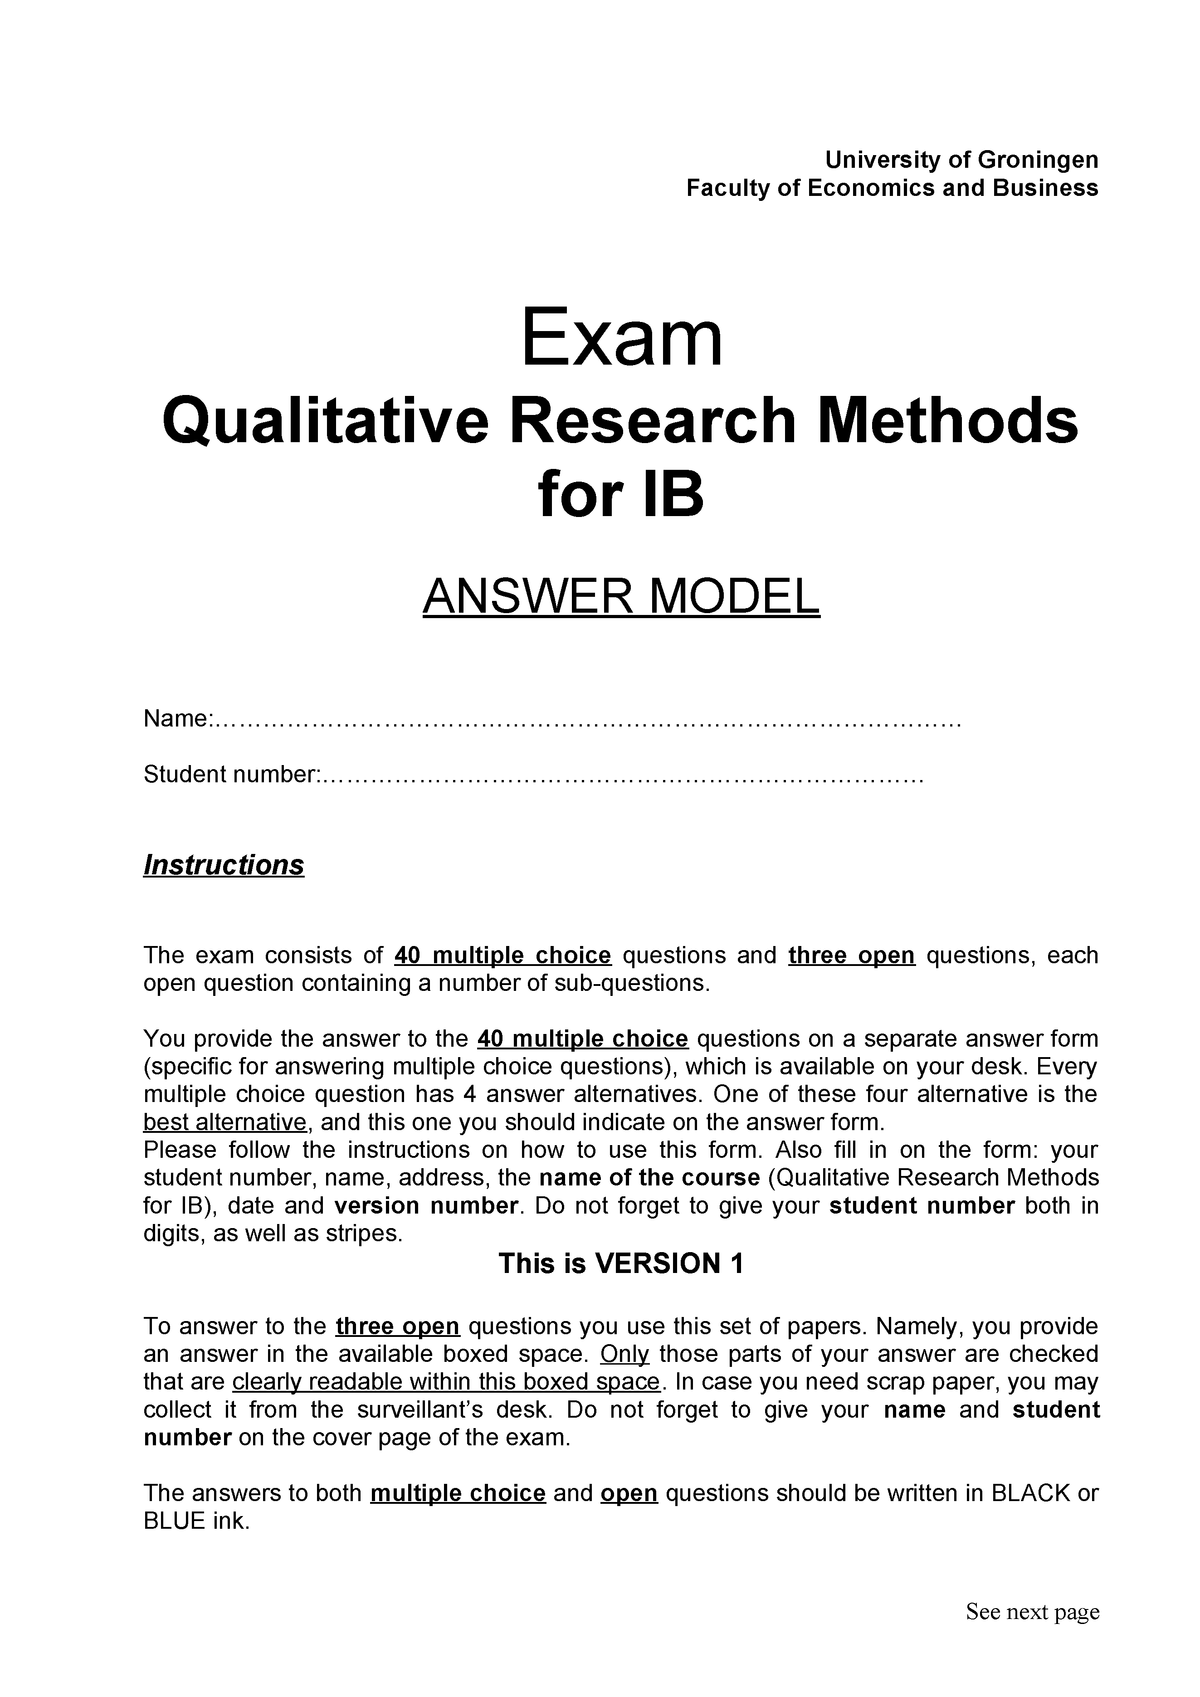 Sample/practice exam 9 April 2015, questions and answers